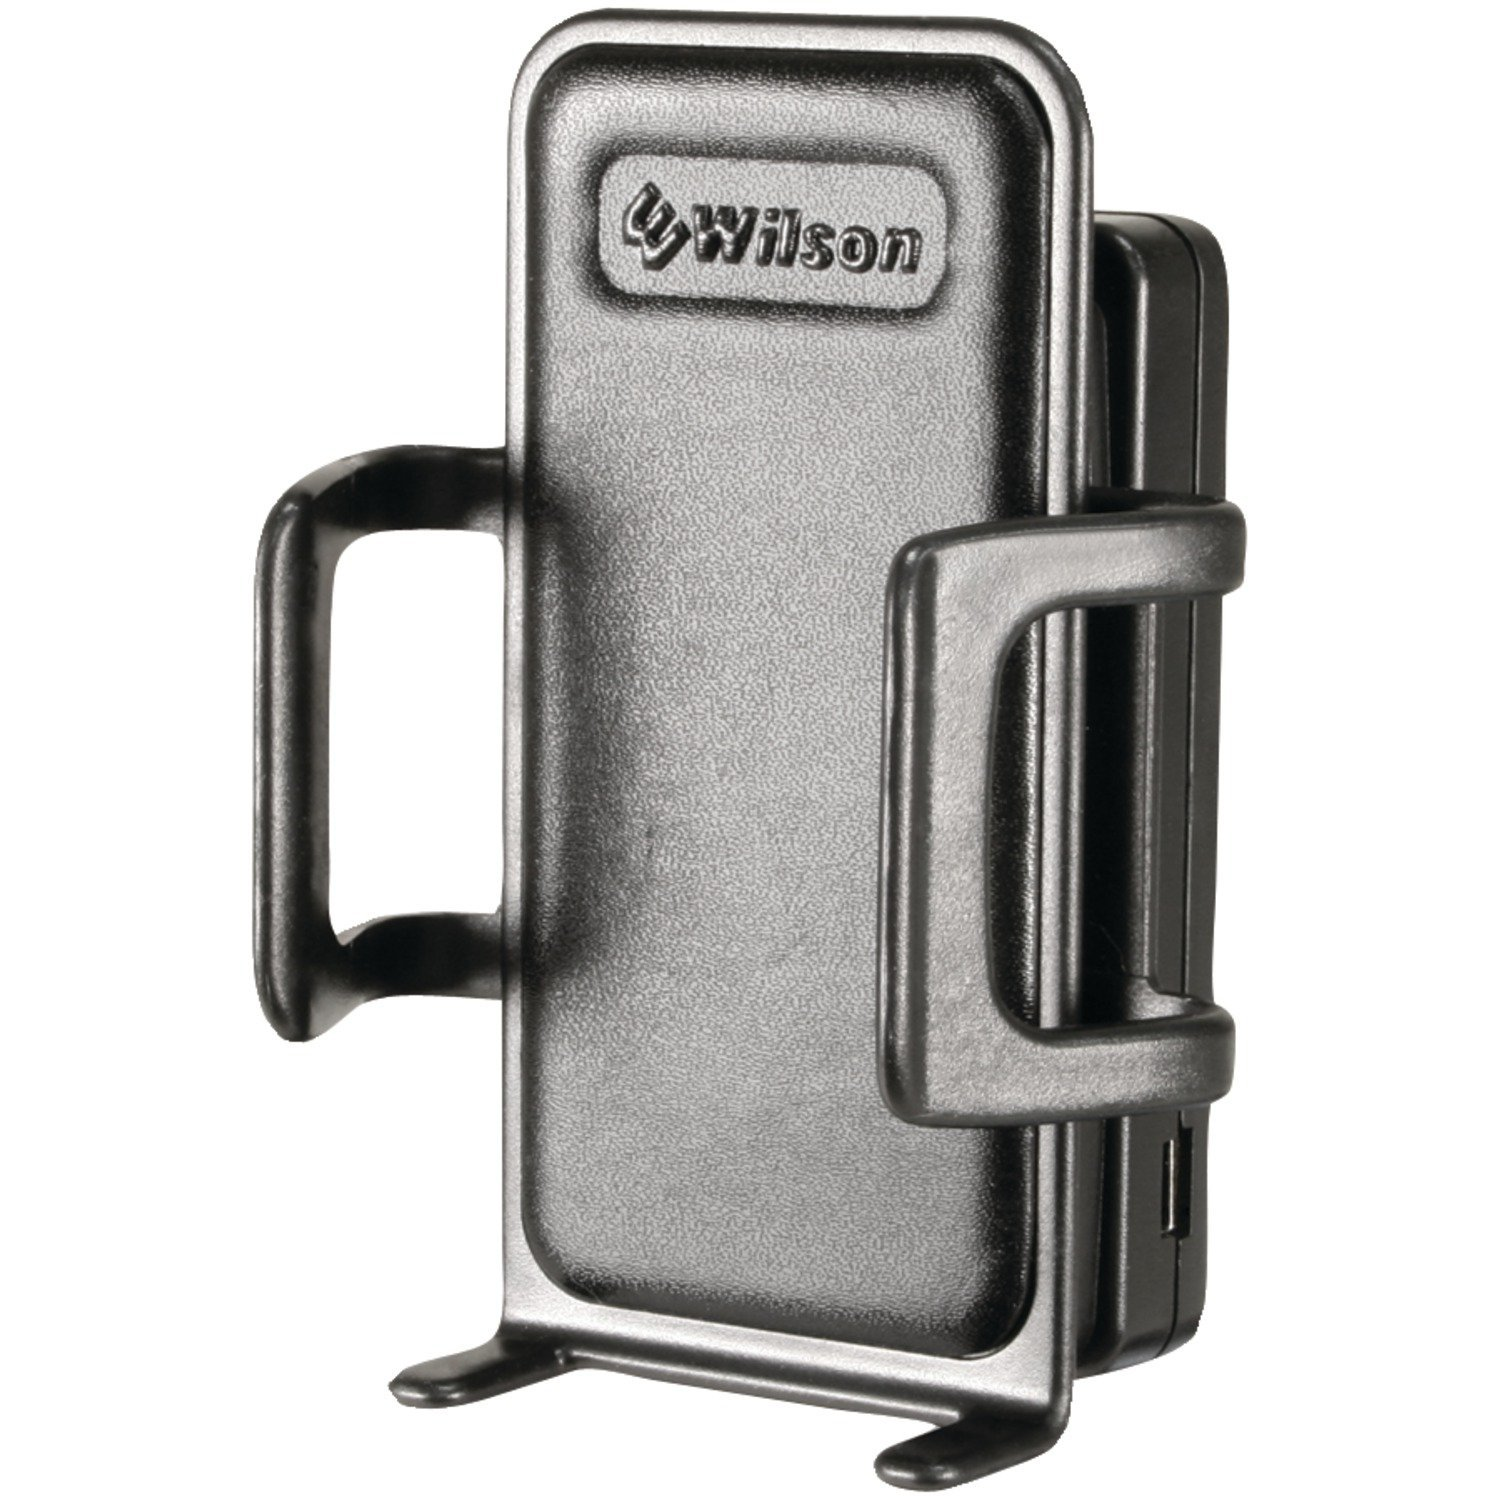 Wilson Electronics 815125 Sleek 4G-V Smart Technology II Signal Booster for 700/800/1,900 Mhz Frequencies (Booster Only) - Retail Packaging - Black (Discontinued by Manufacturer)